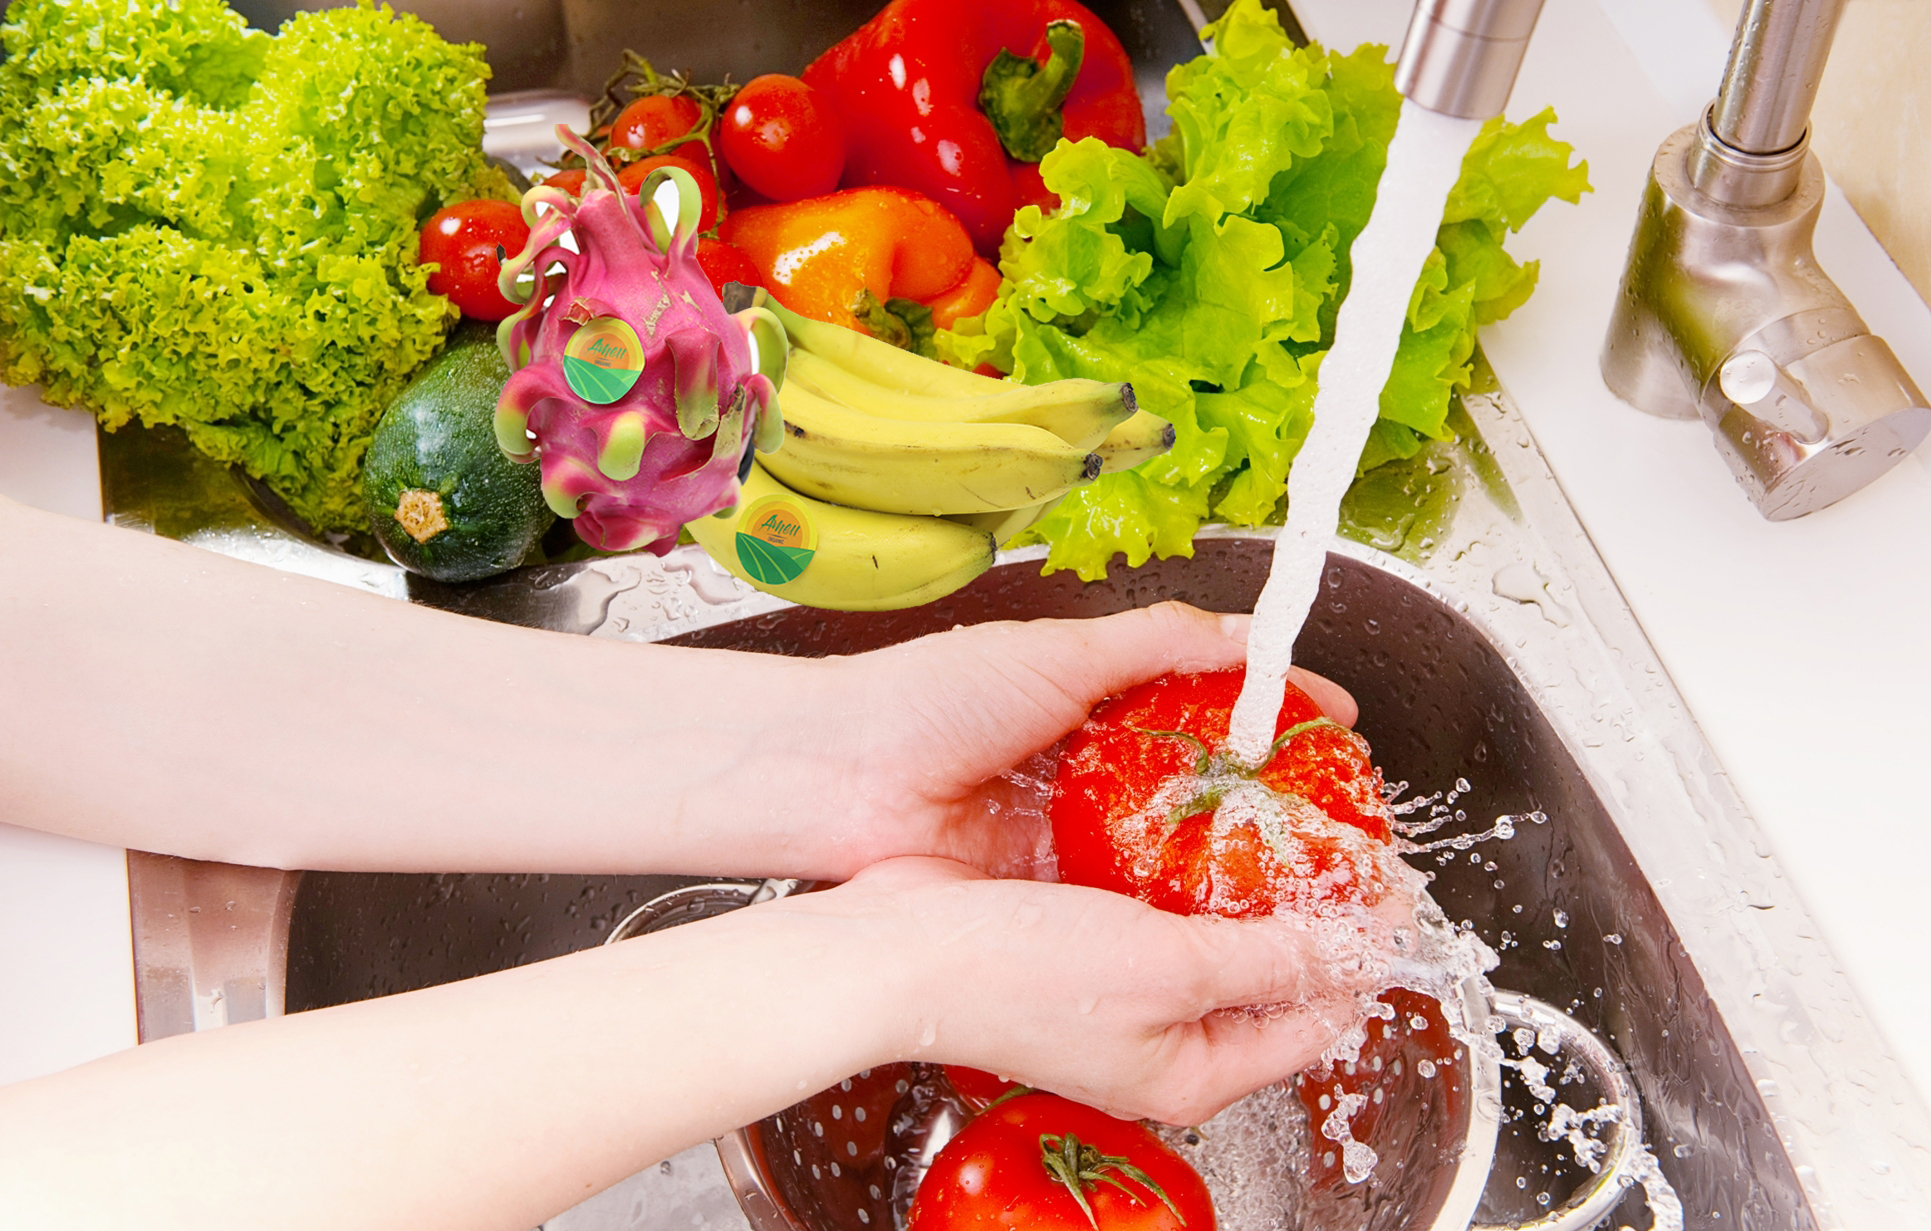 What is clean food? Here are some safe ways to clean vegetables, tubers, fruits, should housewives know.